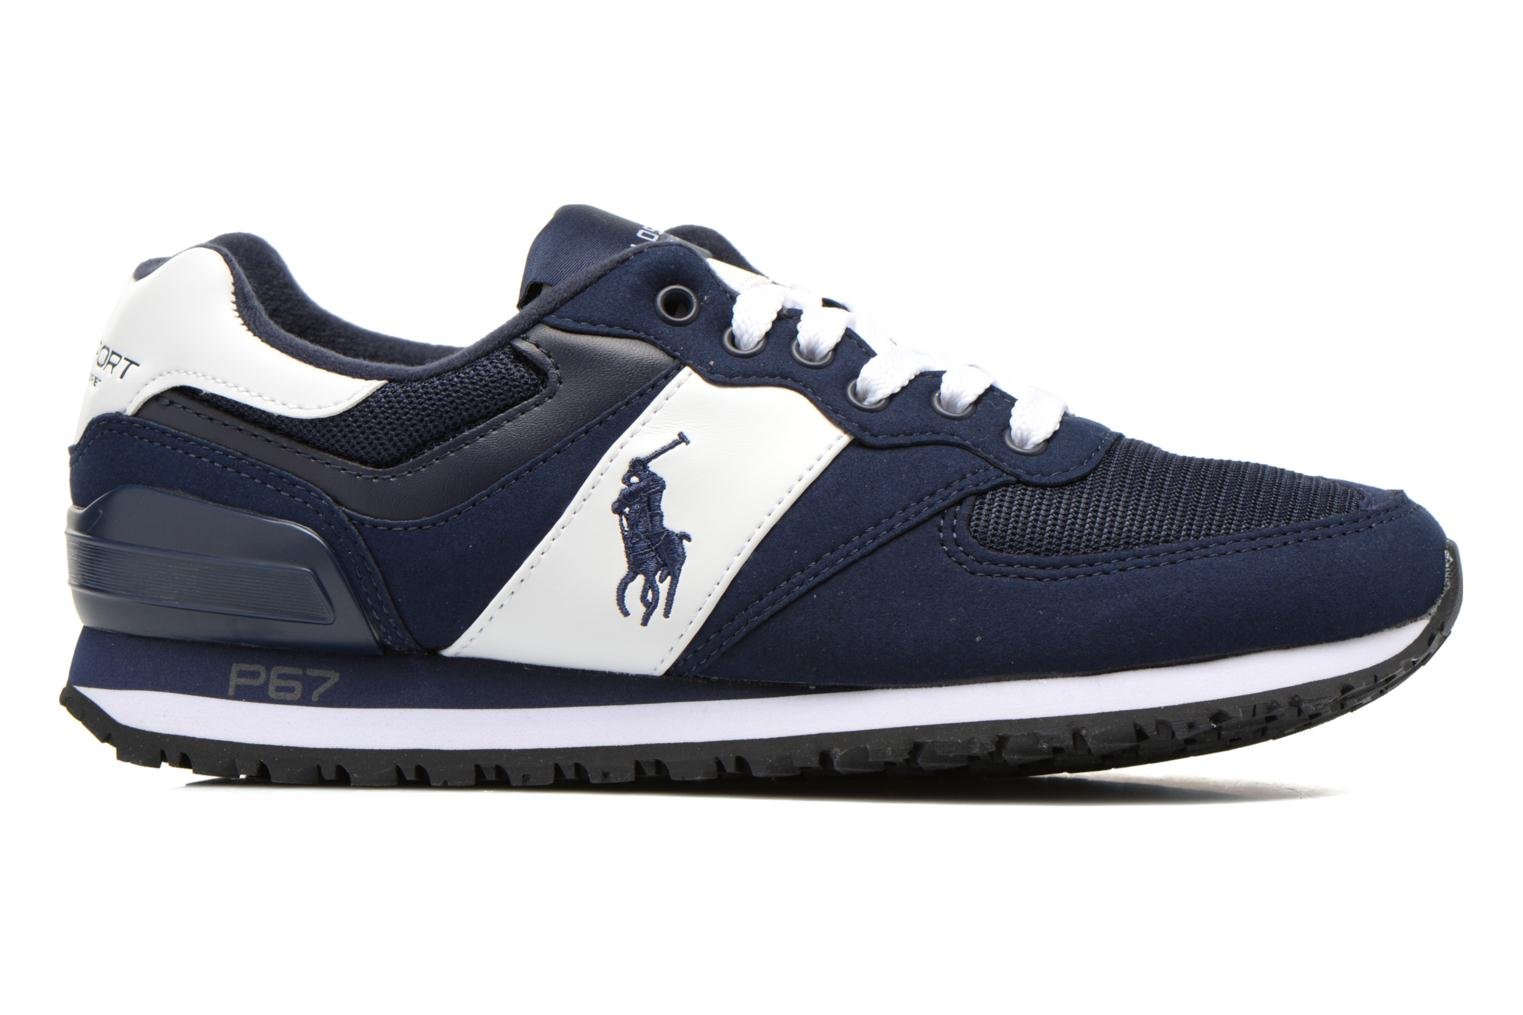 Slaton Pony Newport Navy-White